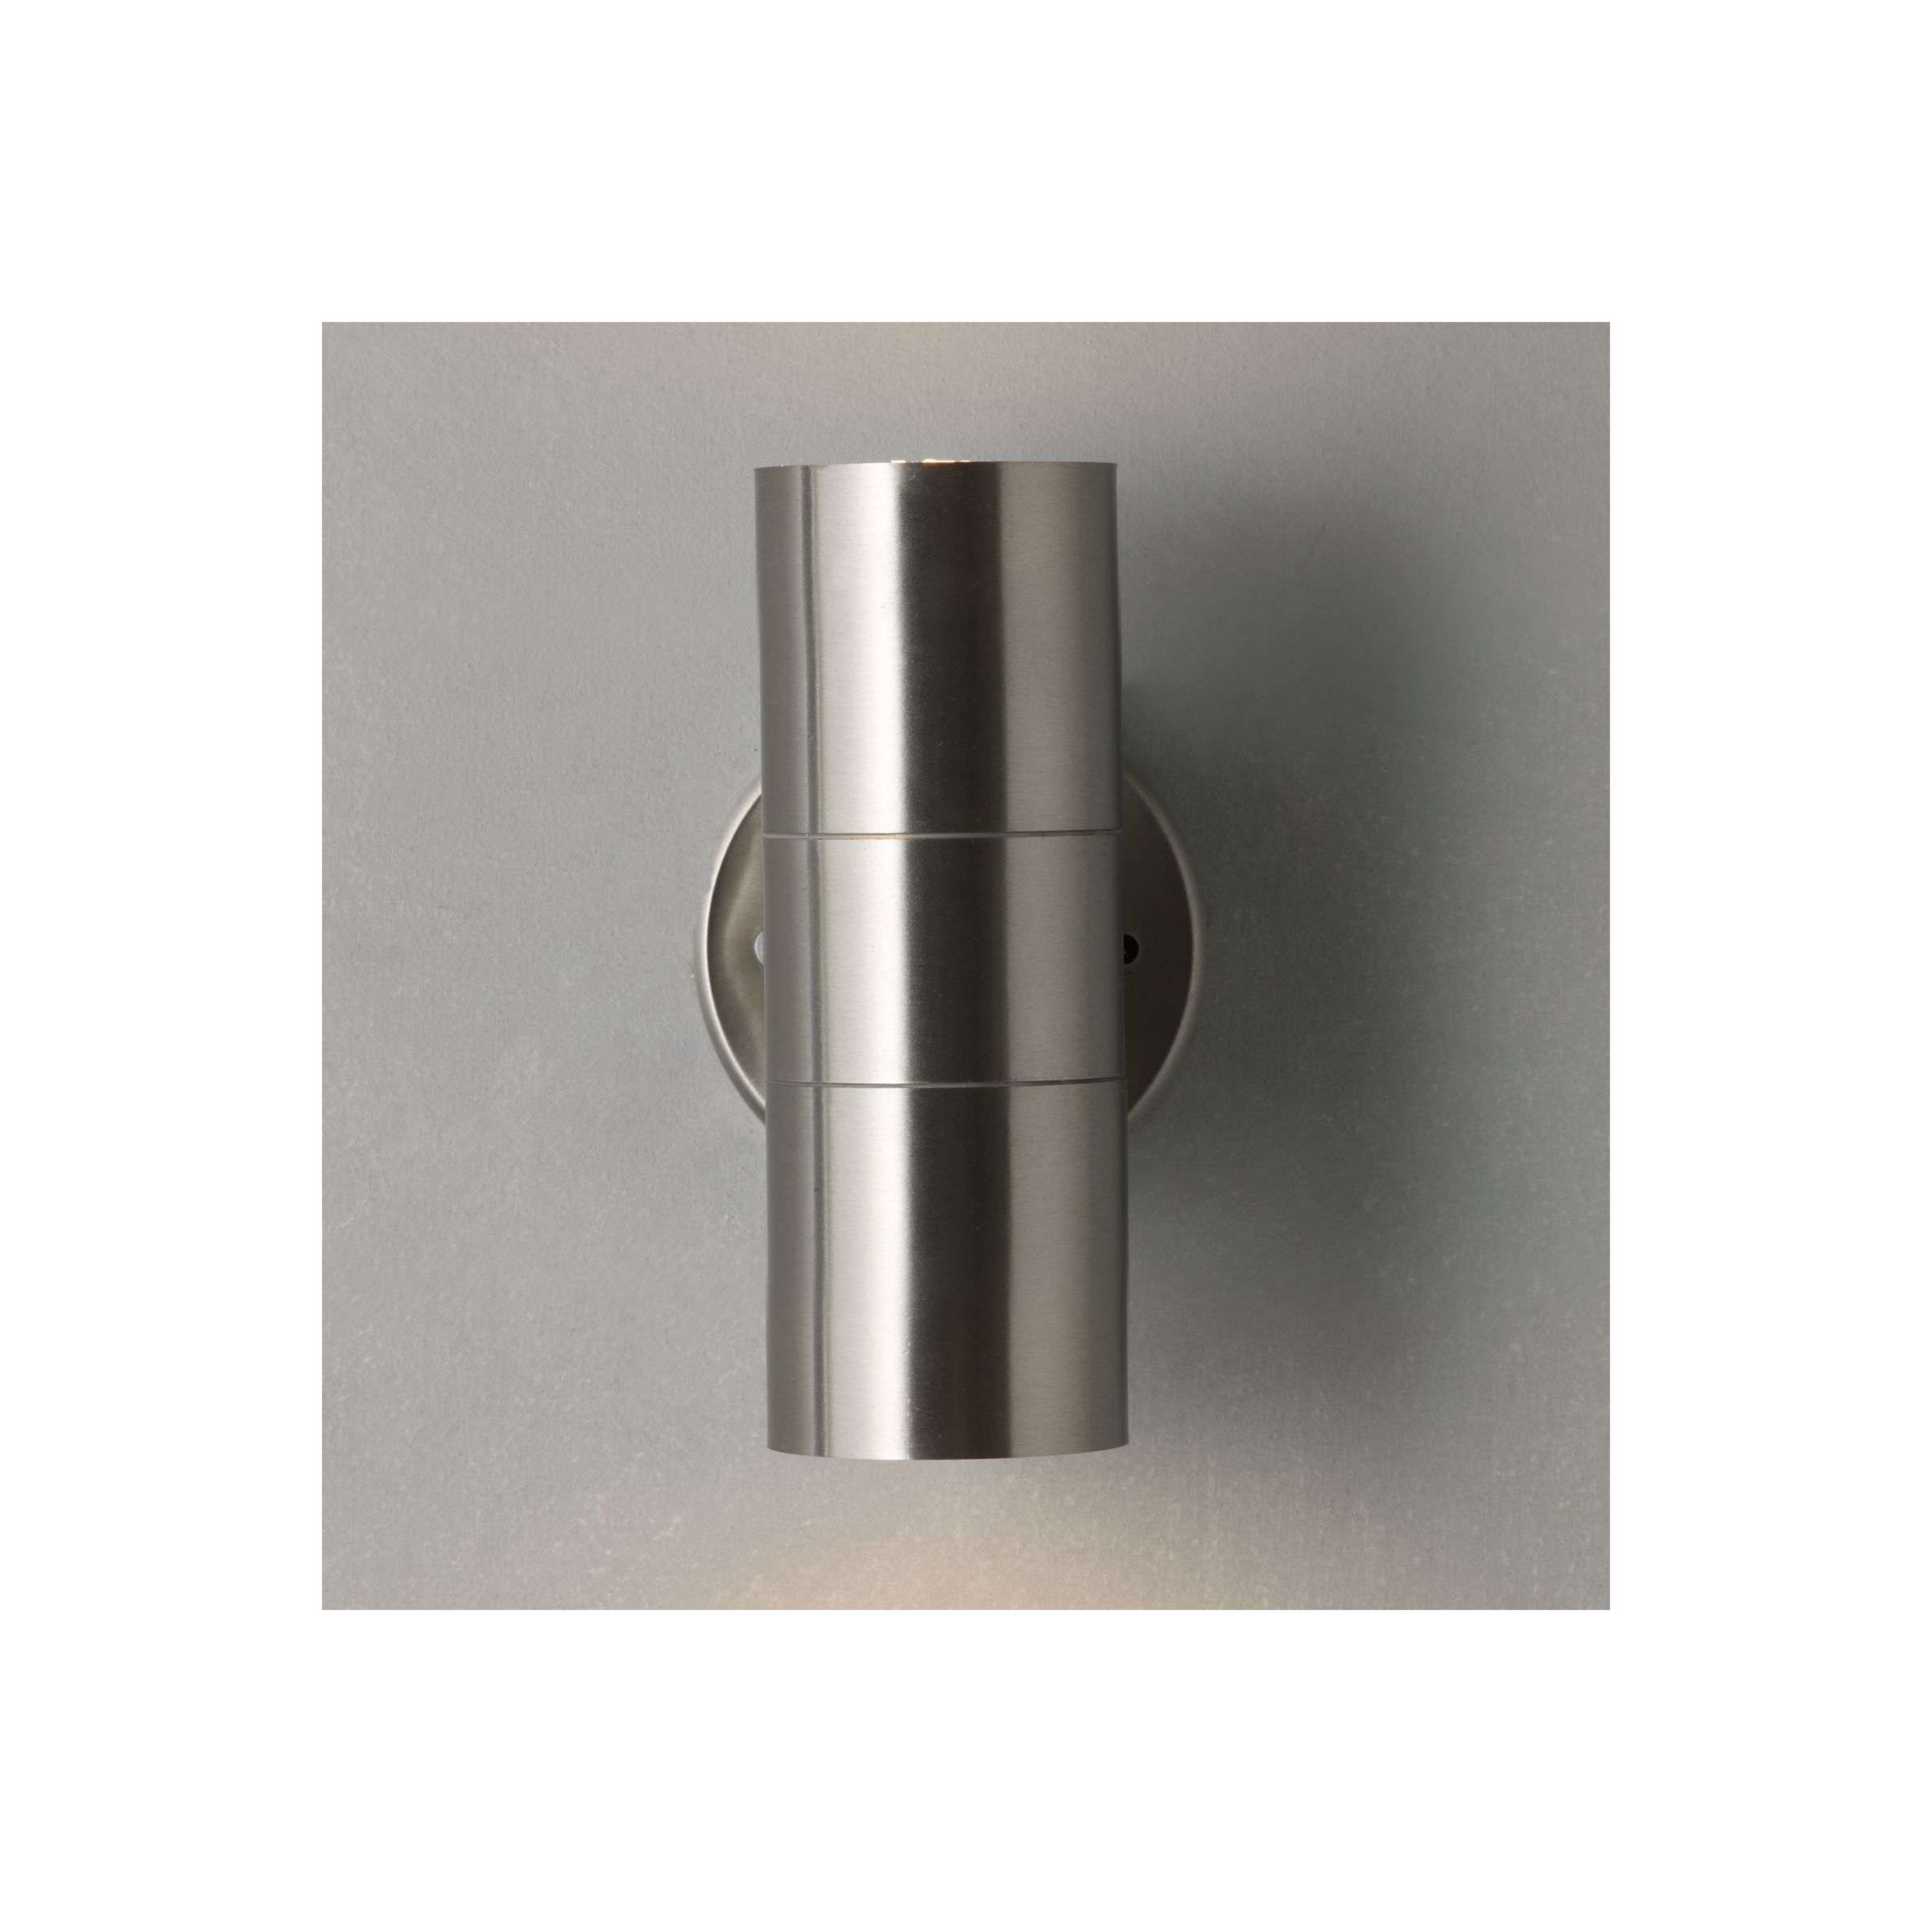 Double Wall Light External : Buy John Lewis Sabrebeam Outdoor Double Wall Light with 2x3.5W GU10 LED Bulbs John Lewis